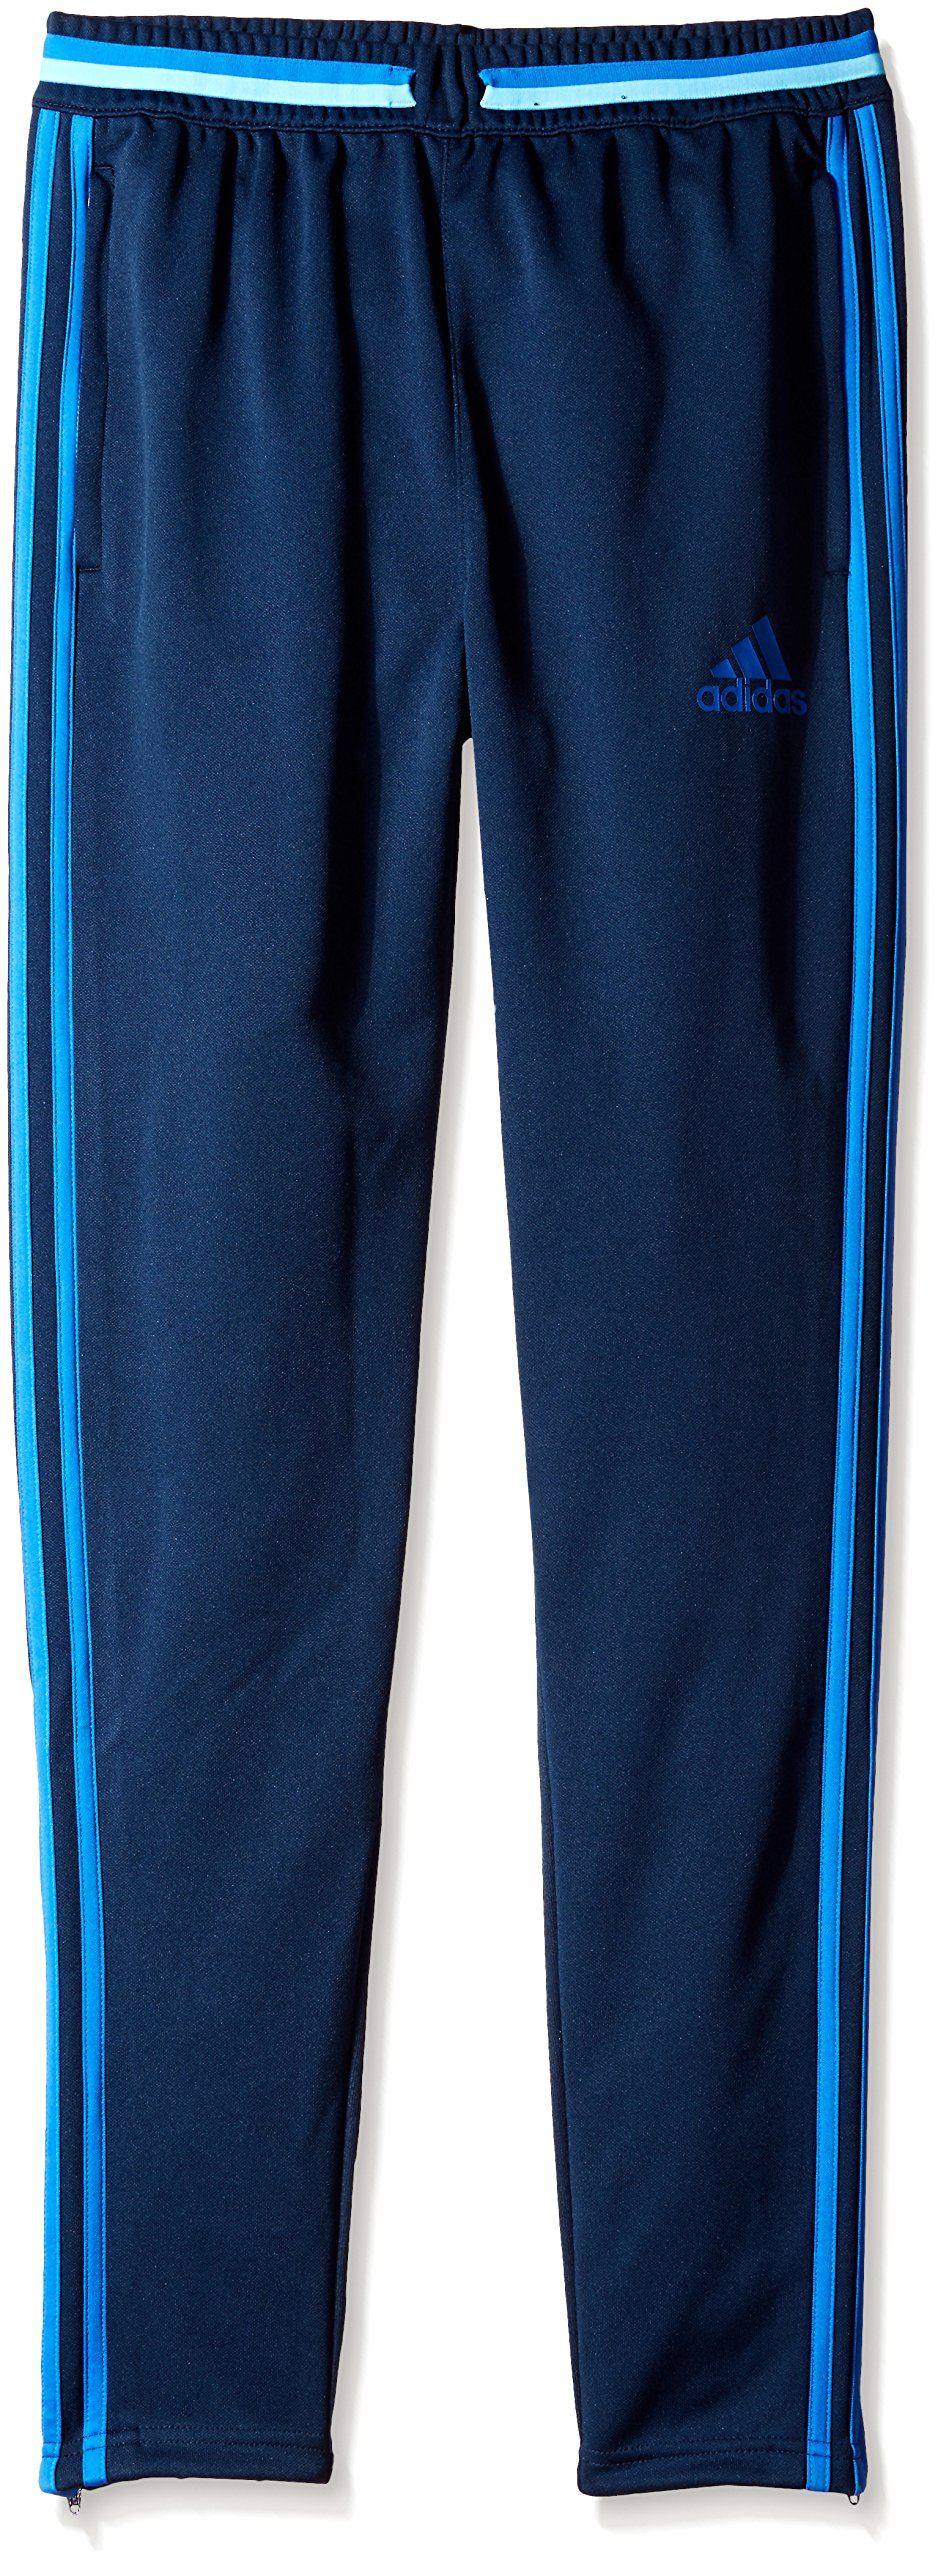 adidas Youth Soccer Condivo 16 Pants Collegiate Navy/Blue ...